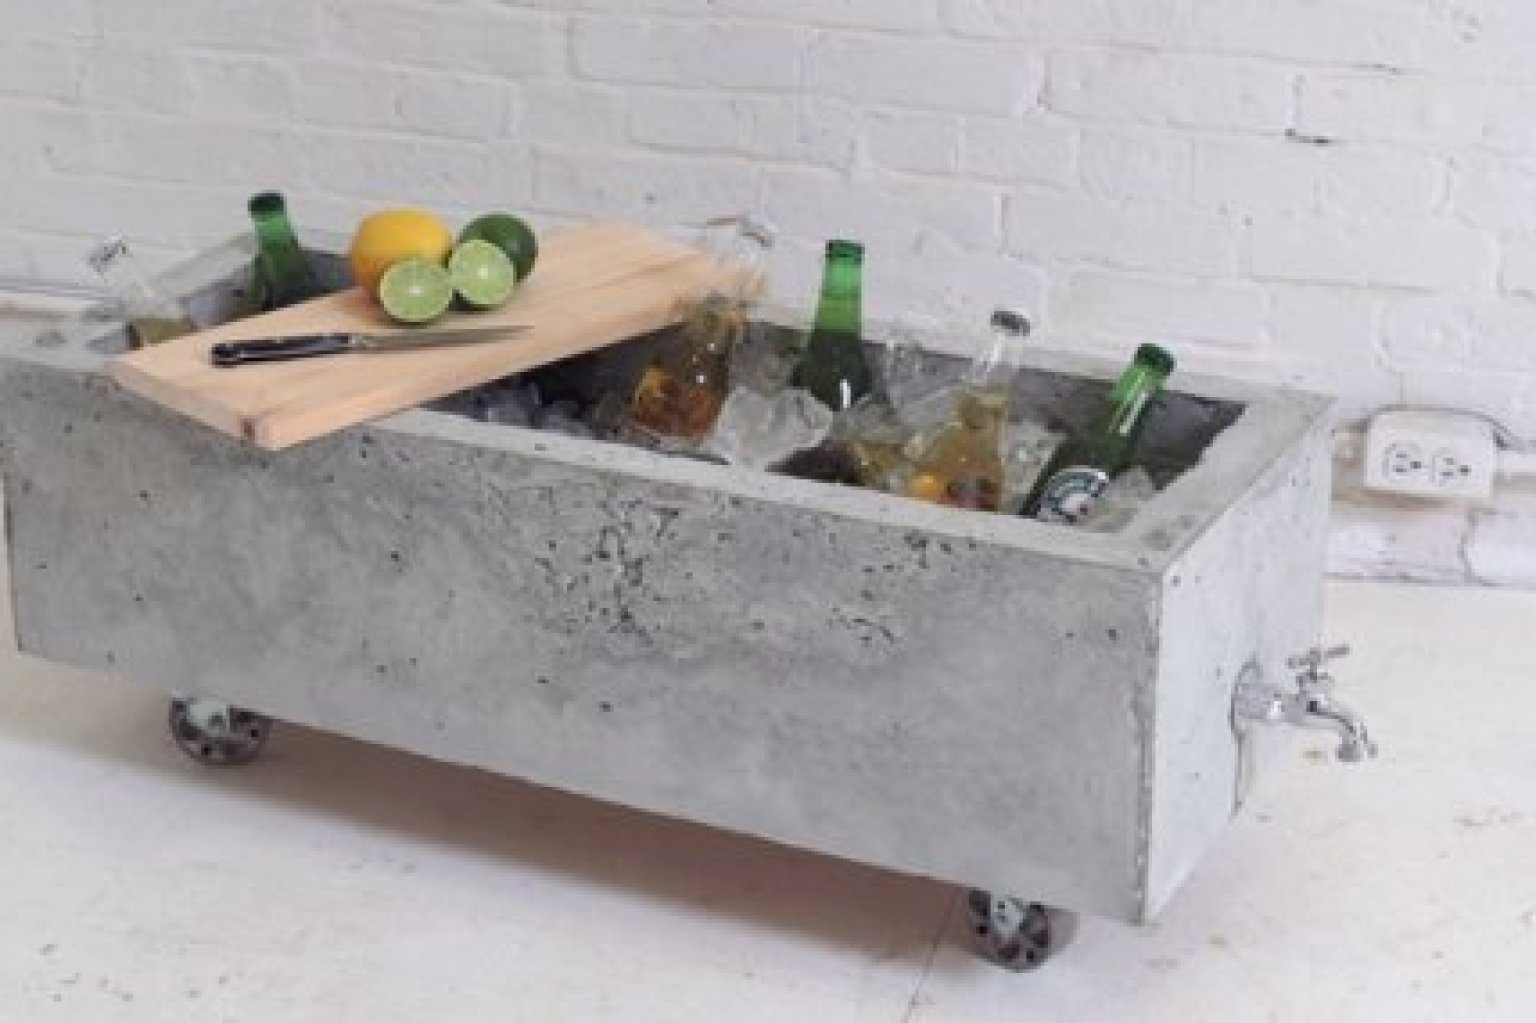 DIY Concrete Planter Doubles As An Industrial Chic Drink Cooler (VIDEO) |  HuffPost